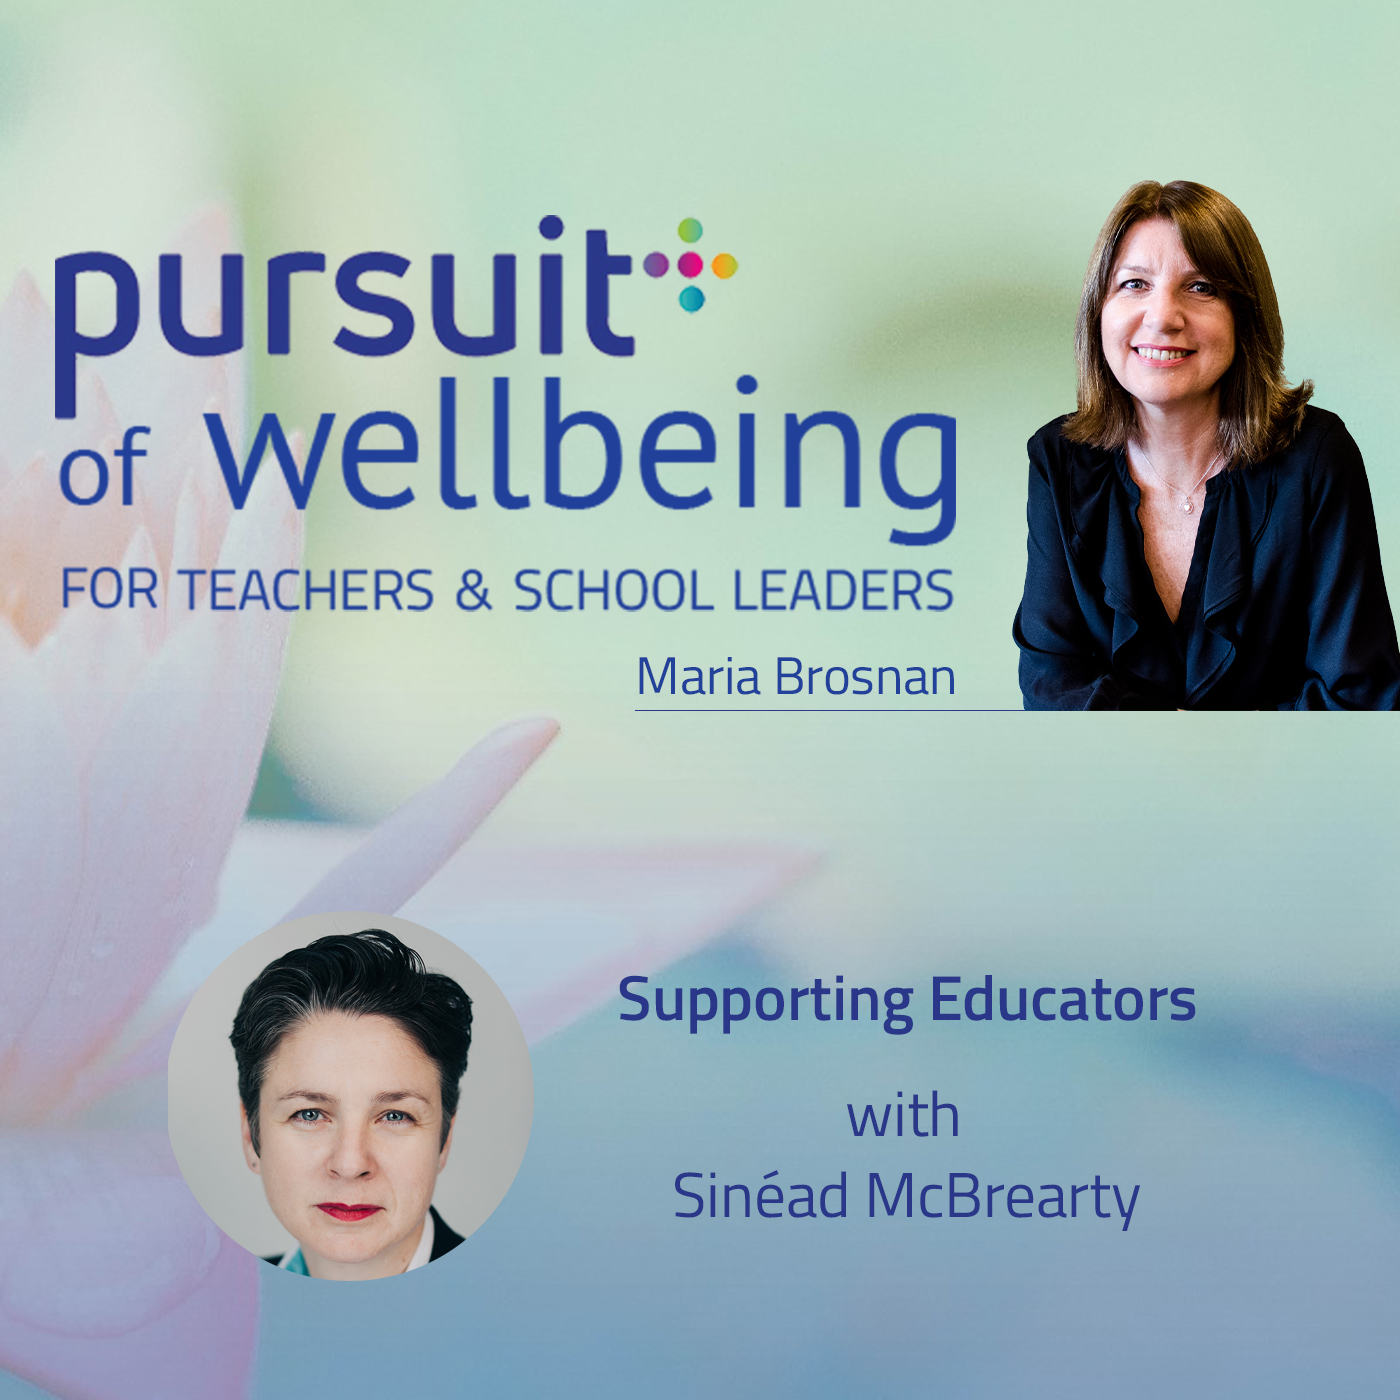 Supporting Educators with Sinead McBrearty